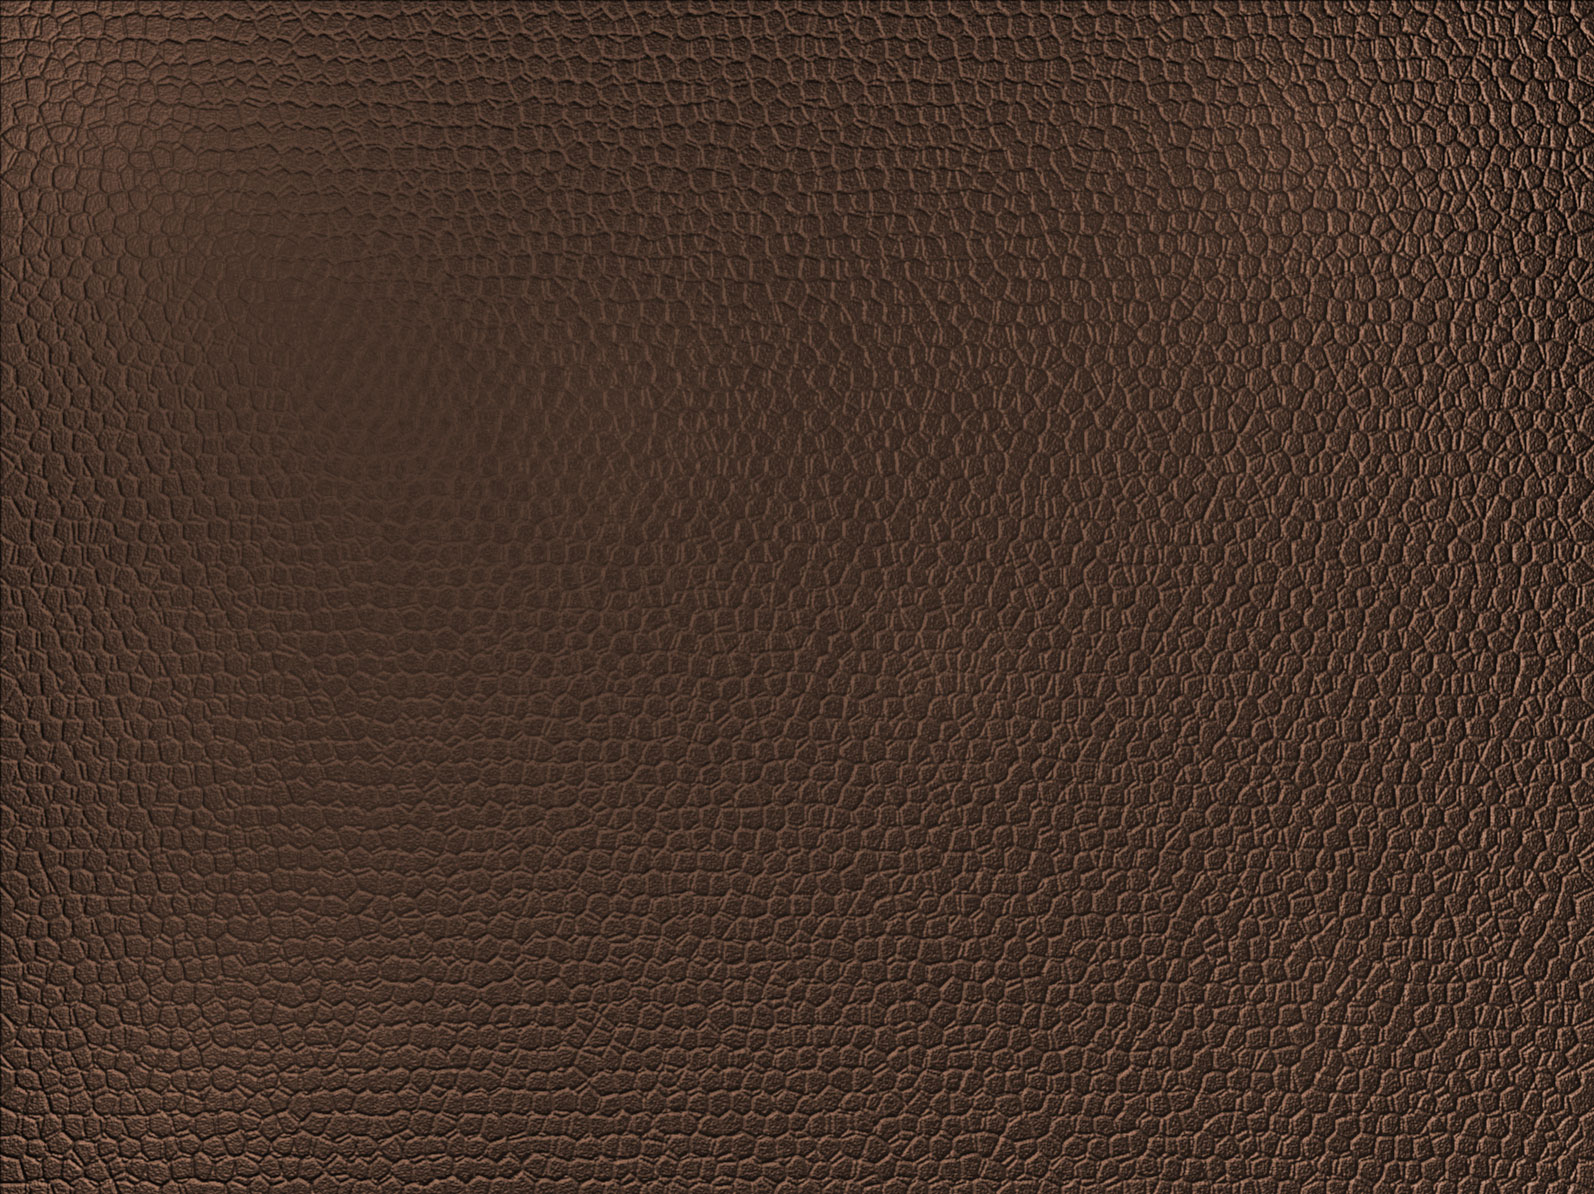 Learn Free Online Photoshop Create Your Own Leather